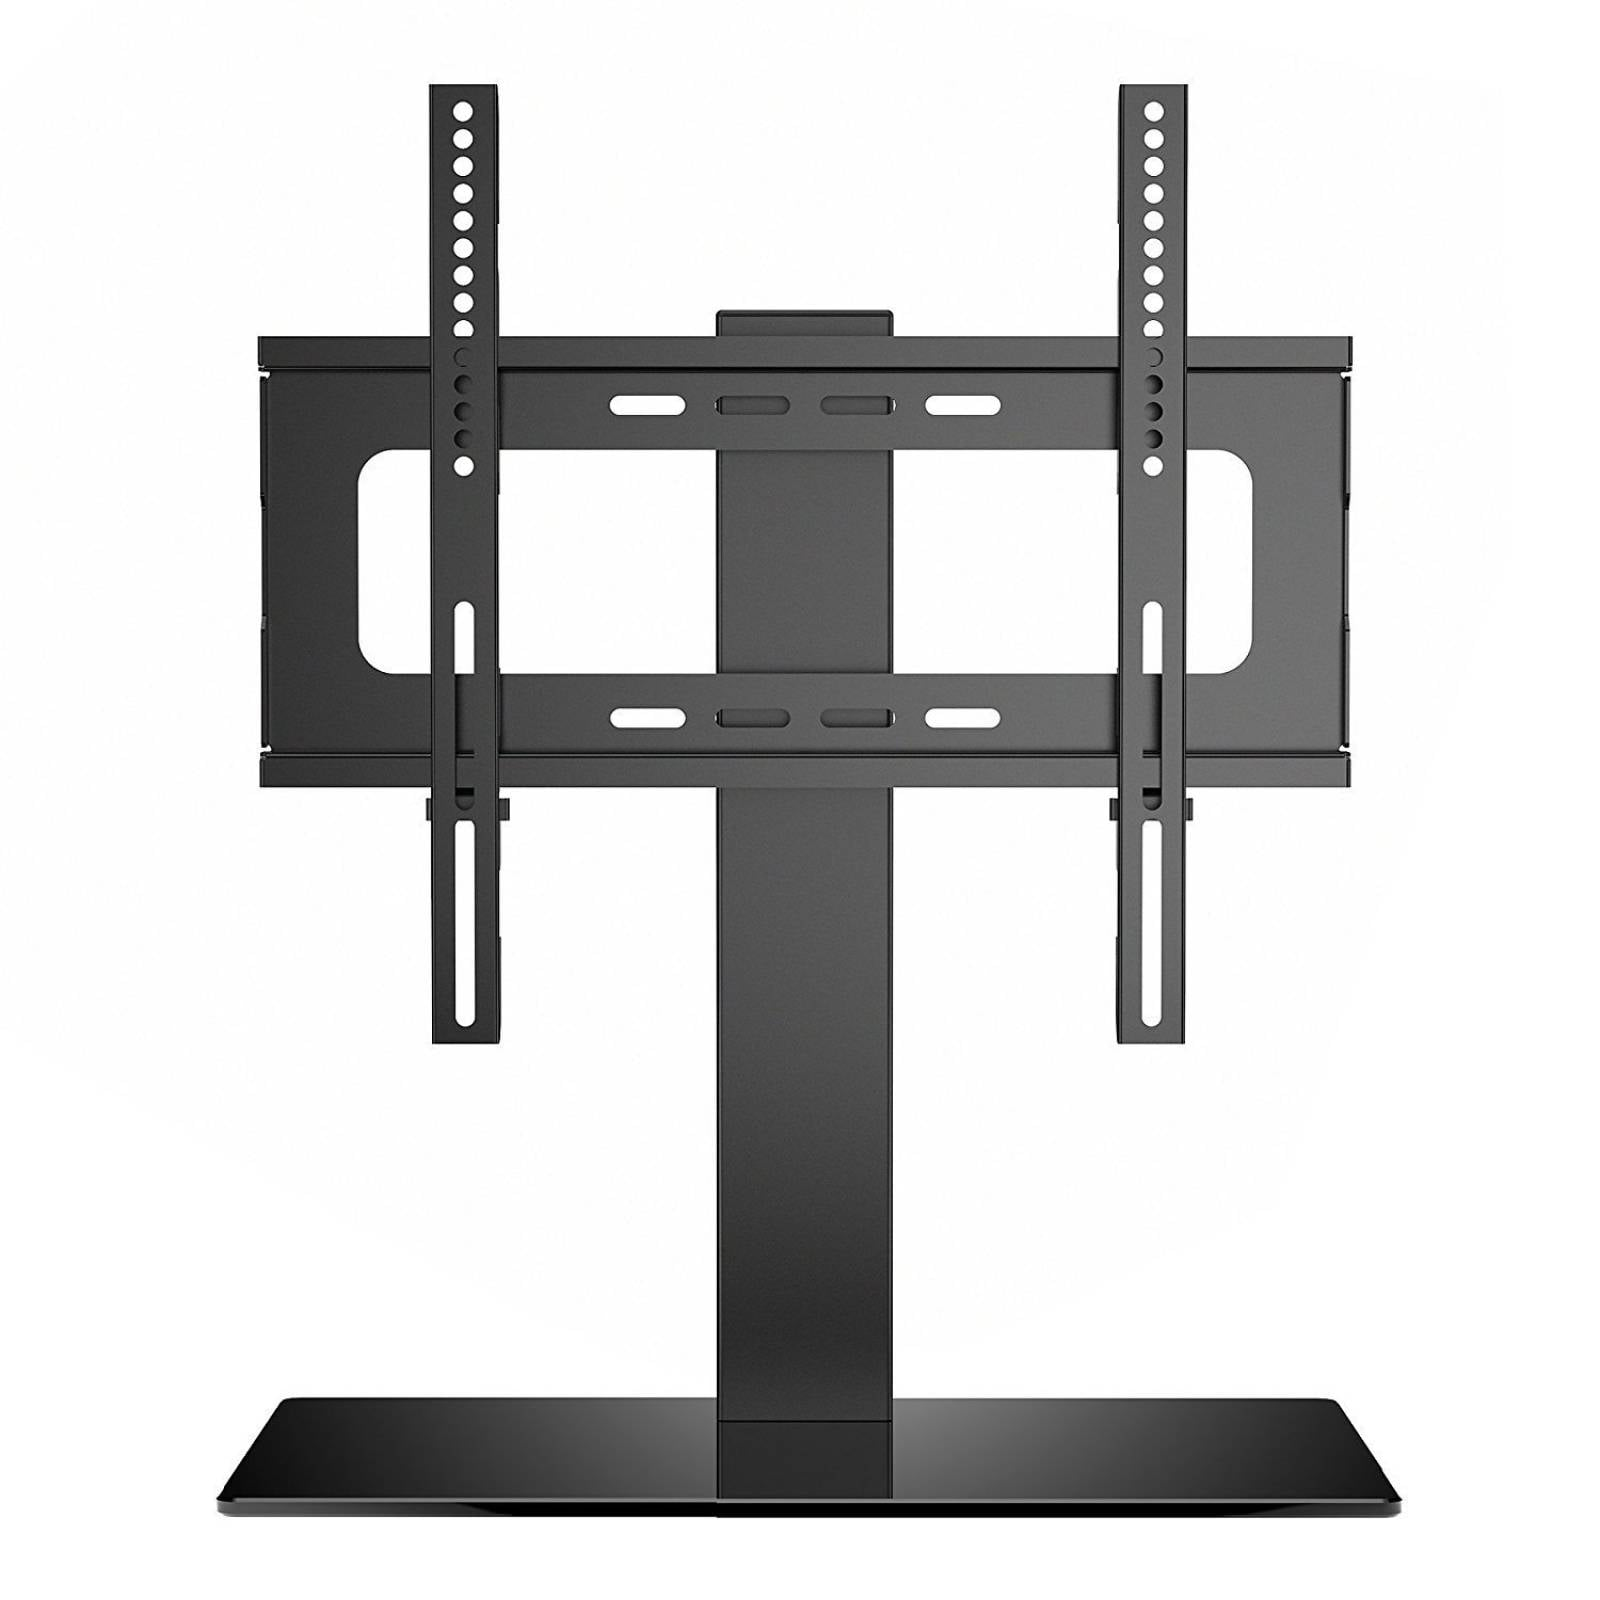 Soporte Tv Mesa 1homefurnit Tv Soporte Mesa Pedestal Soporte Lcd Led Tv 26 3